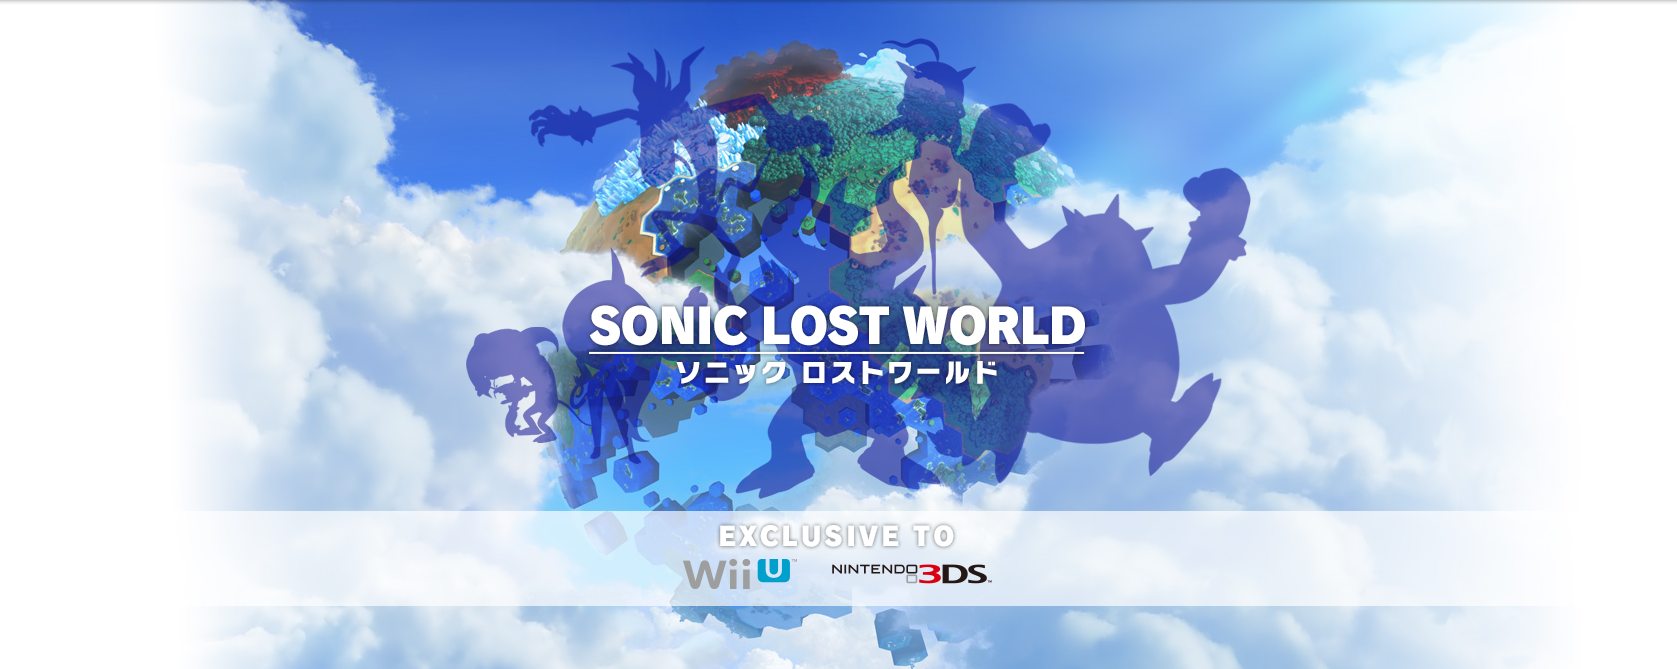 Photo of SEGA teases Sonic Lost World 'Guardian' reveal